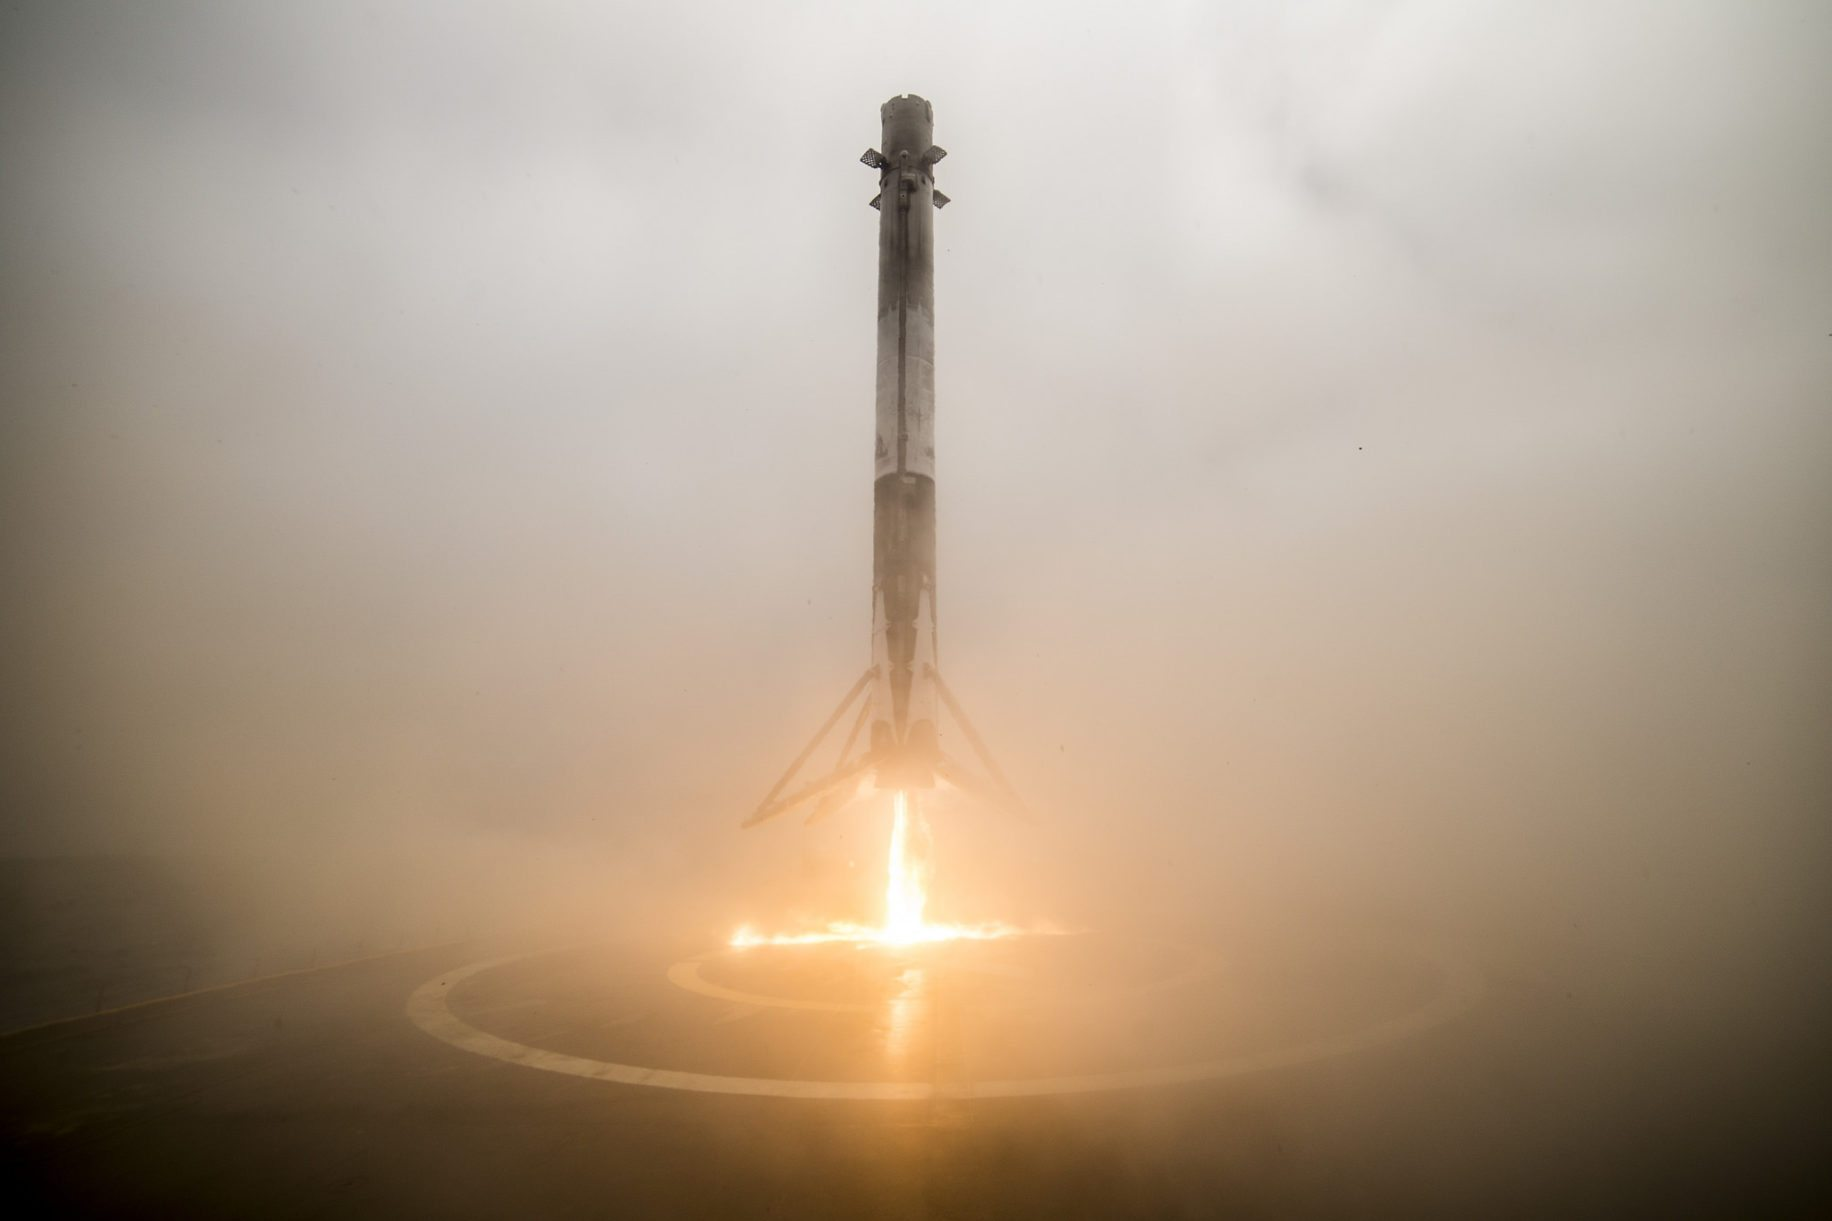 SpaceX and Elon Musk make great fun of Falcon 9 failed landings